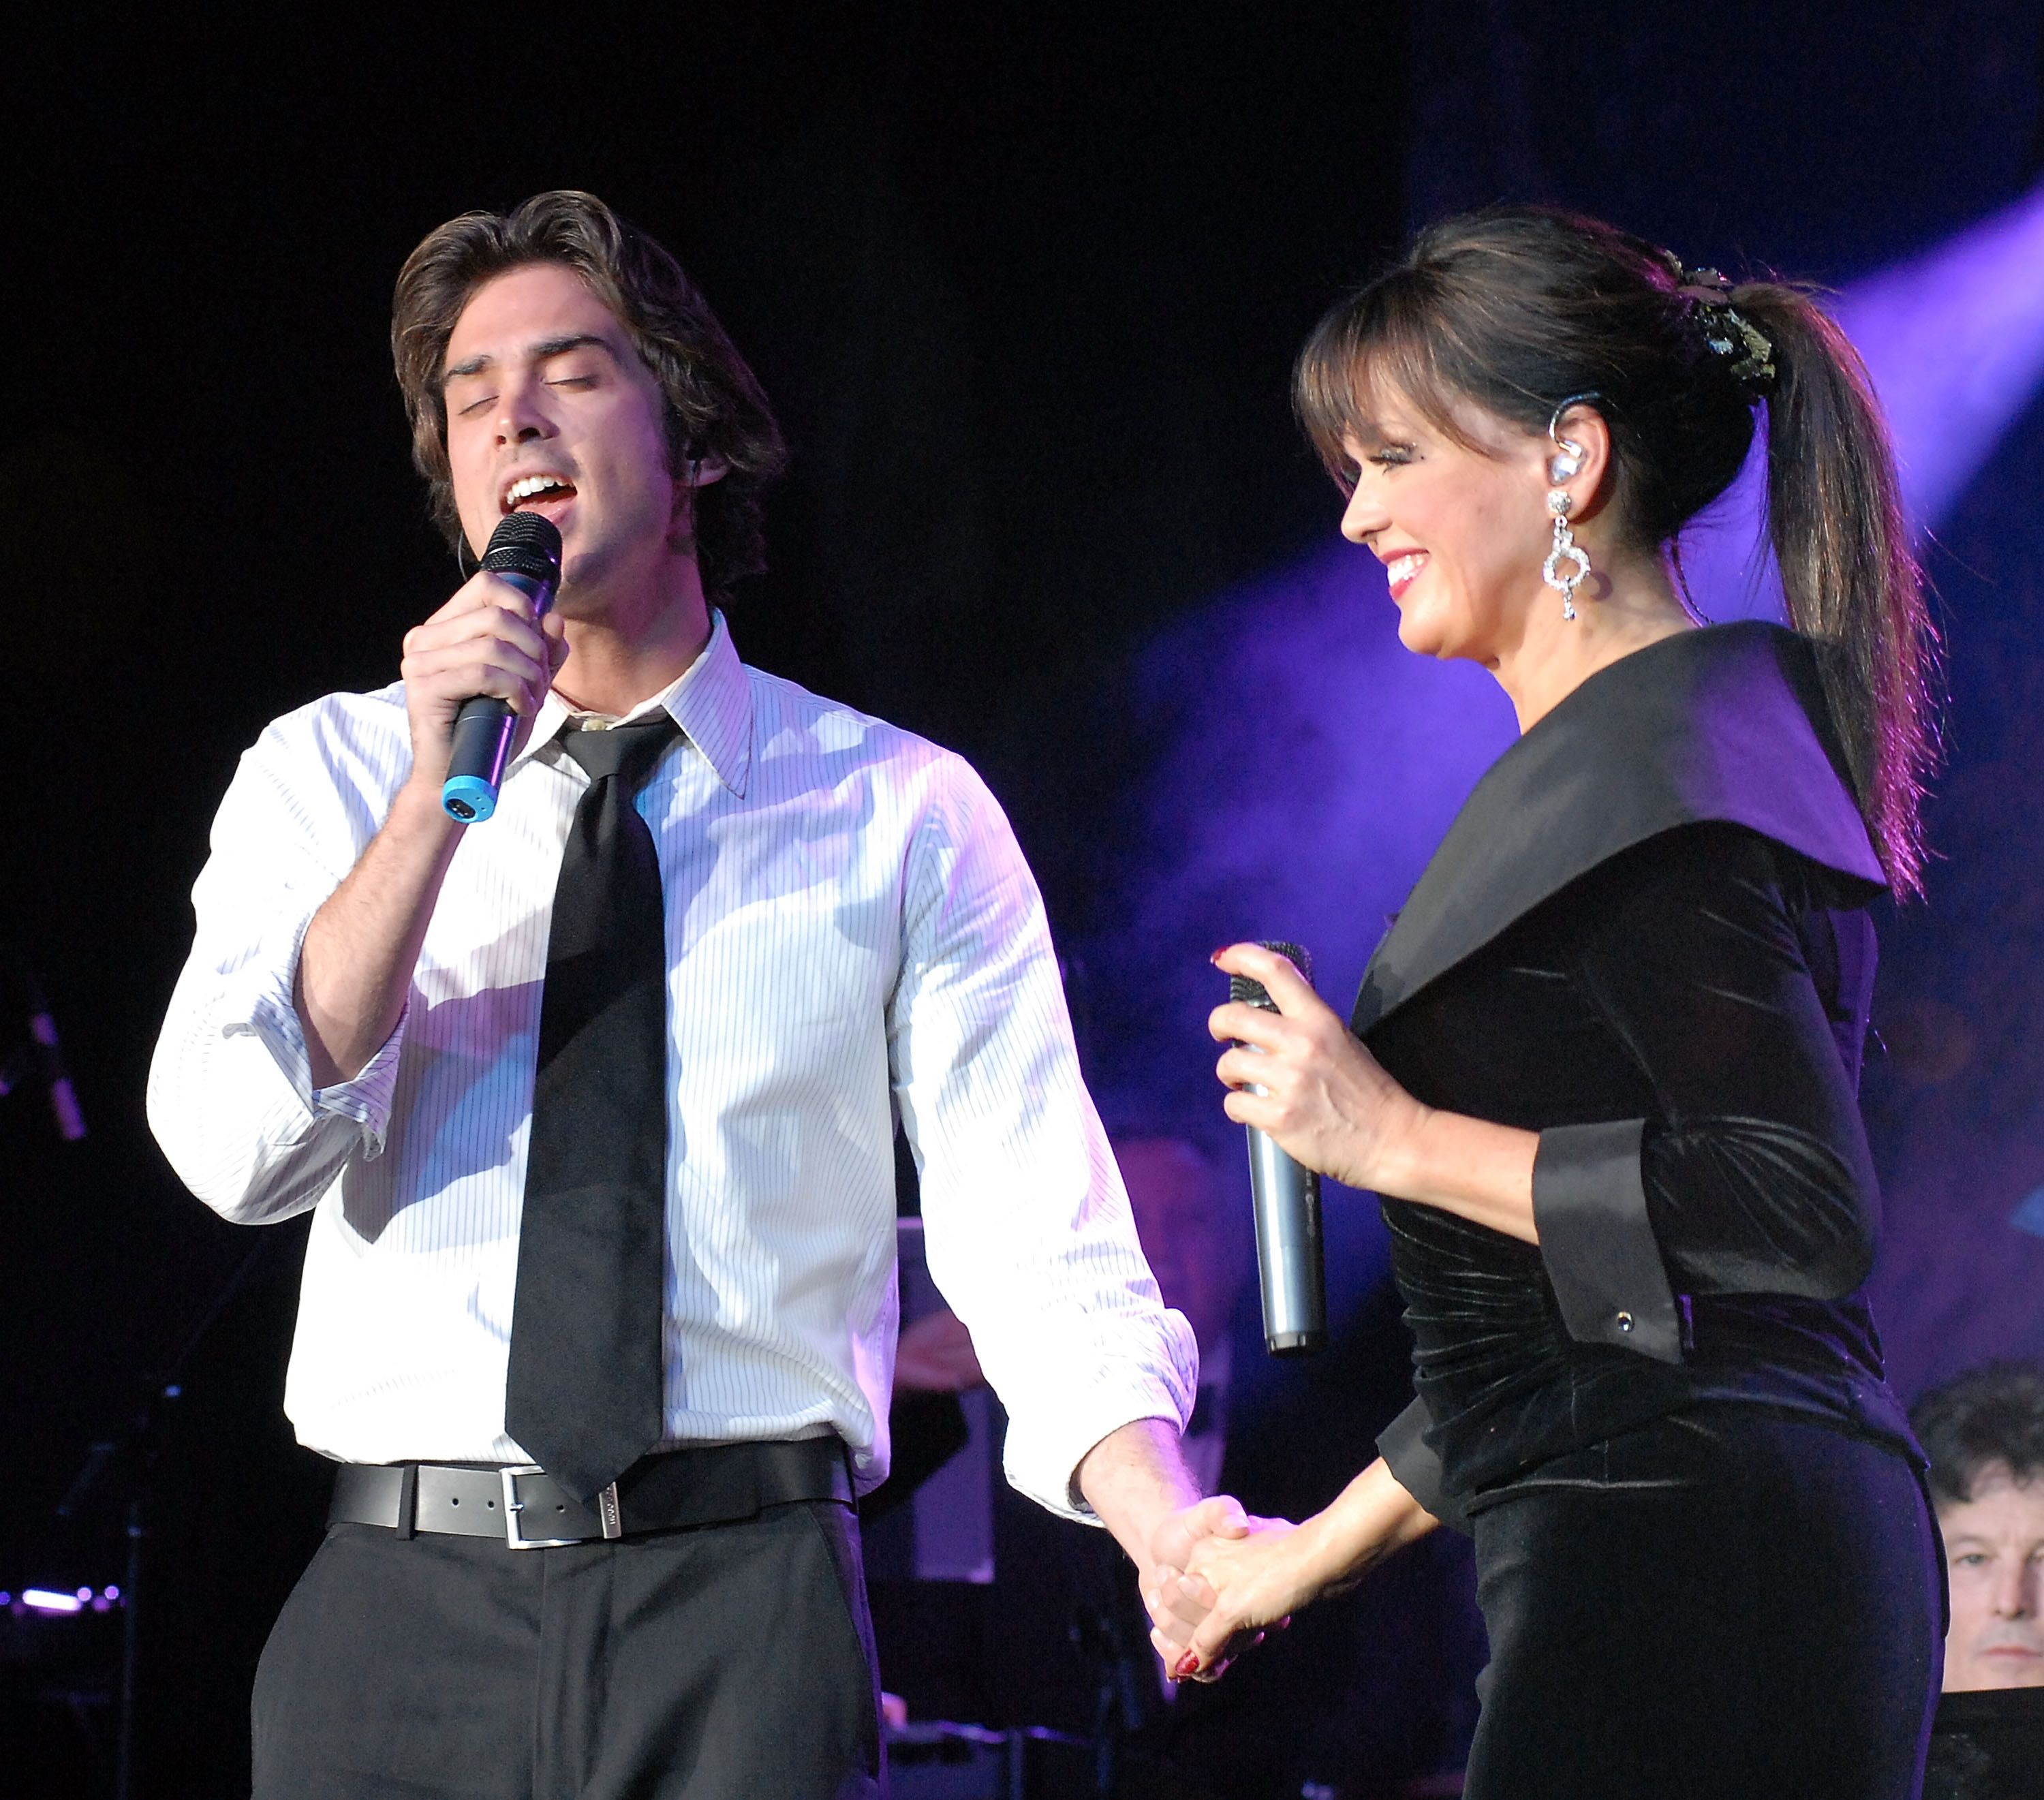 Stephen Craig Jr. and mother Marie Osmond perform together at the Marie Osmond's Magic of Christmas show at Trump Marina on December 1, 2007 at Atlantic City, New Jersey   Source: Getty Images